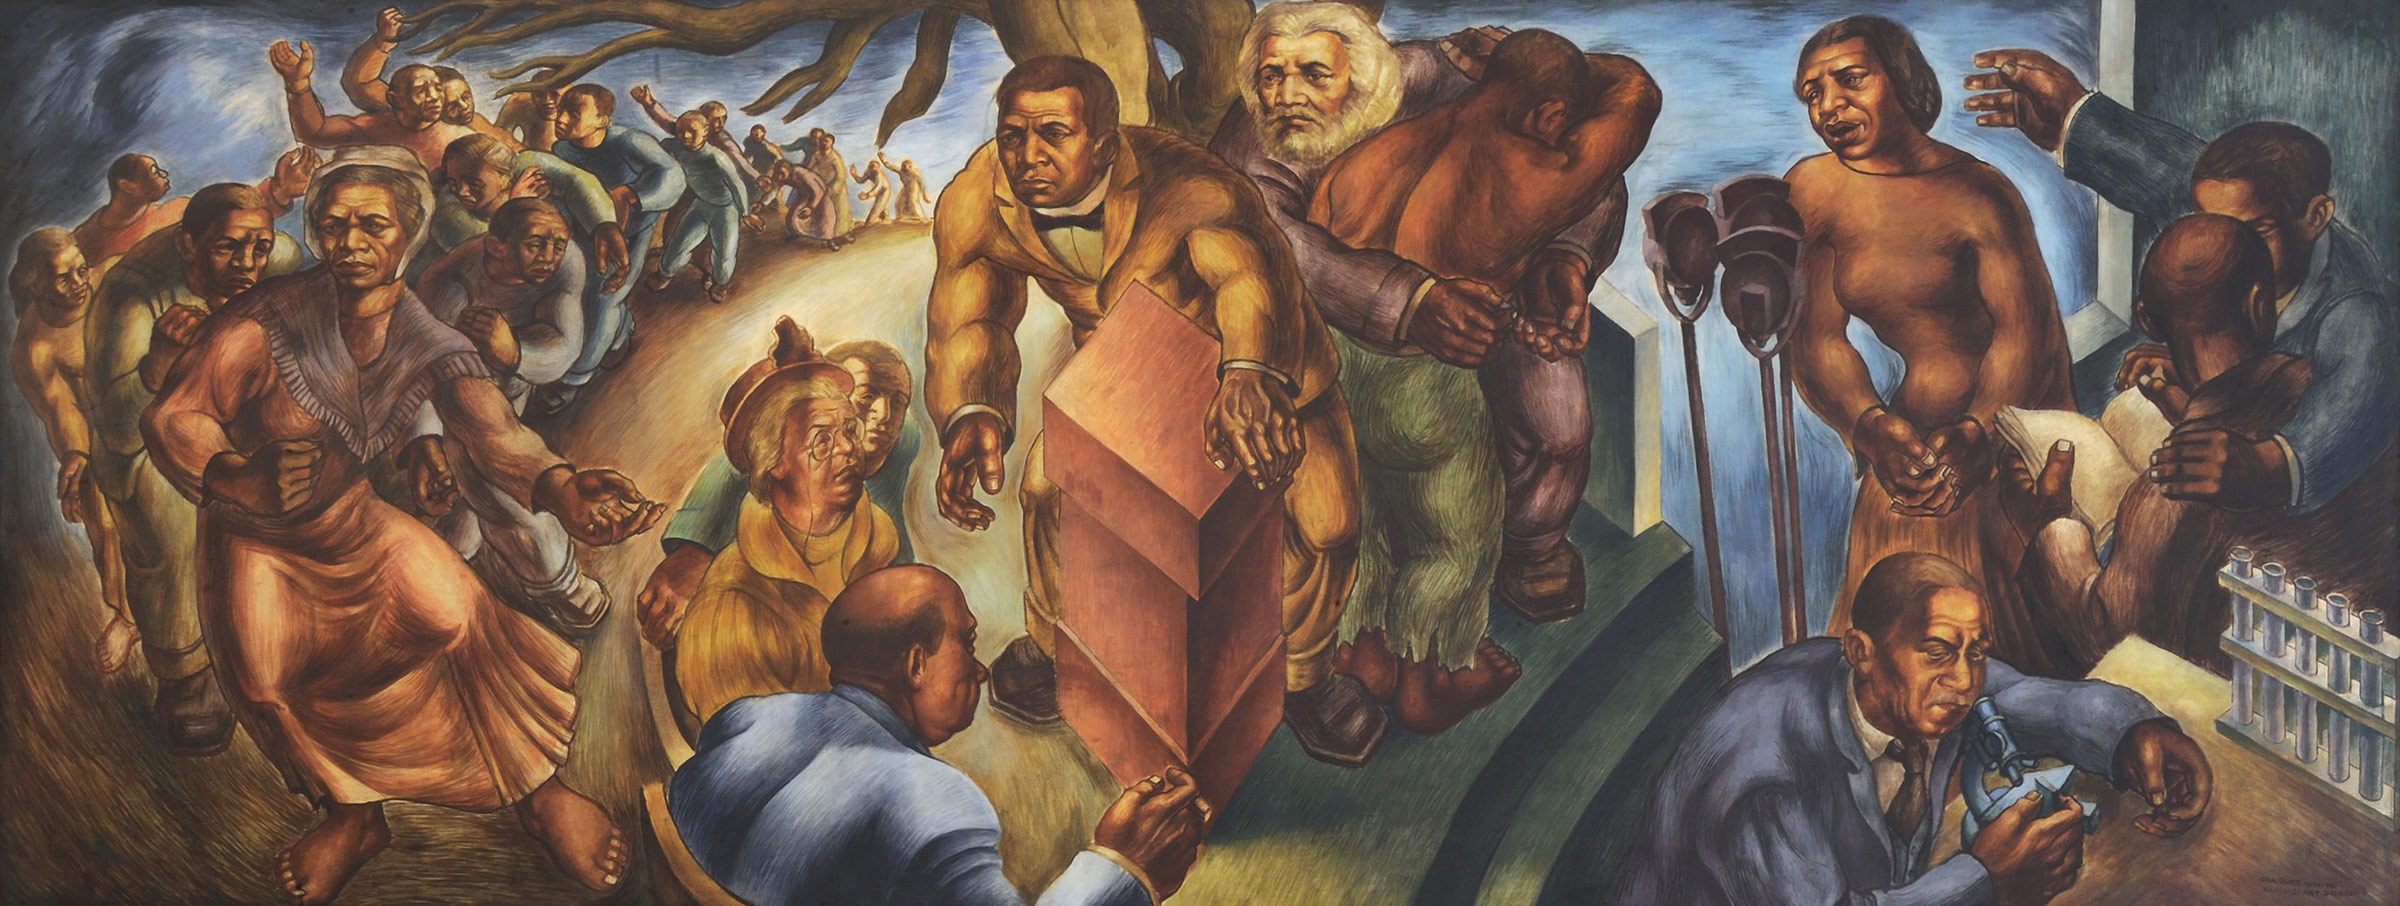 Charles White, Progress of the American Negro: Five Great American Negroes, 1939–40